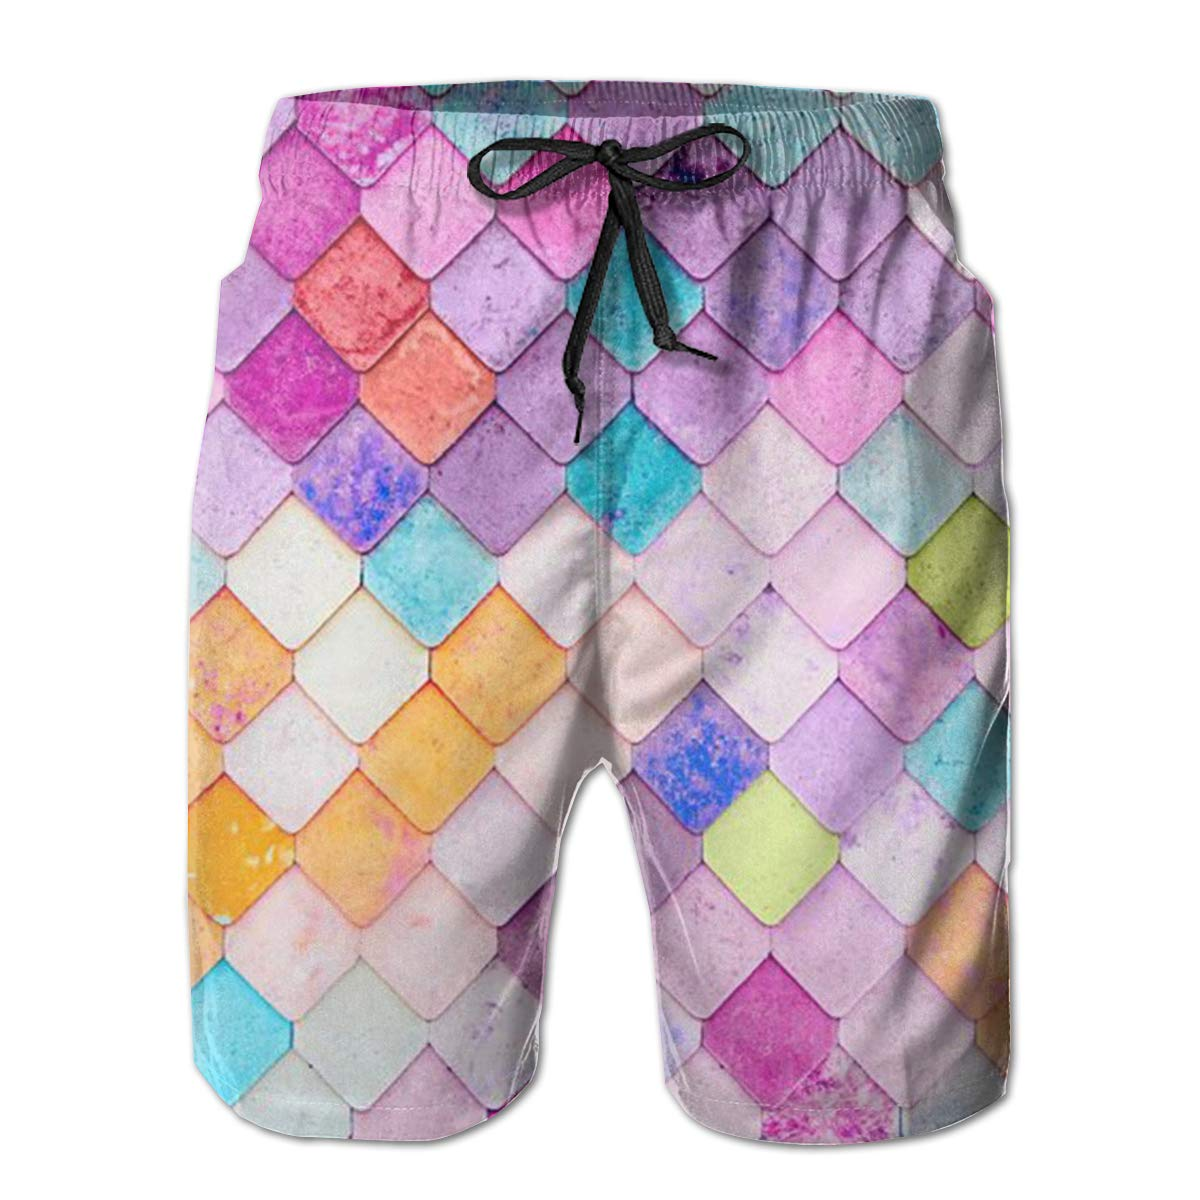 DHVJBC Mens Colored Fish Scales Summer Holiday Quick-Drying Swim Trunks Beach Shorts Board Shorts